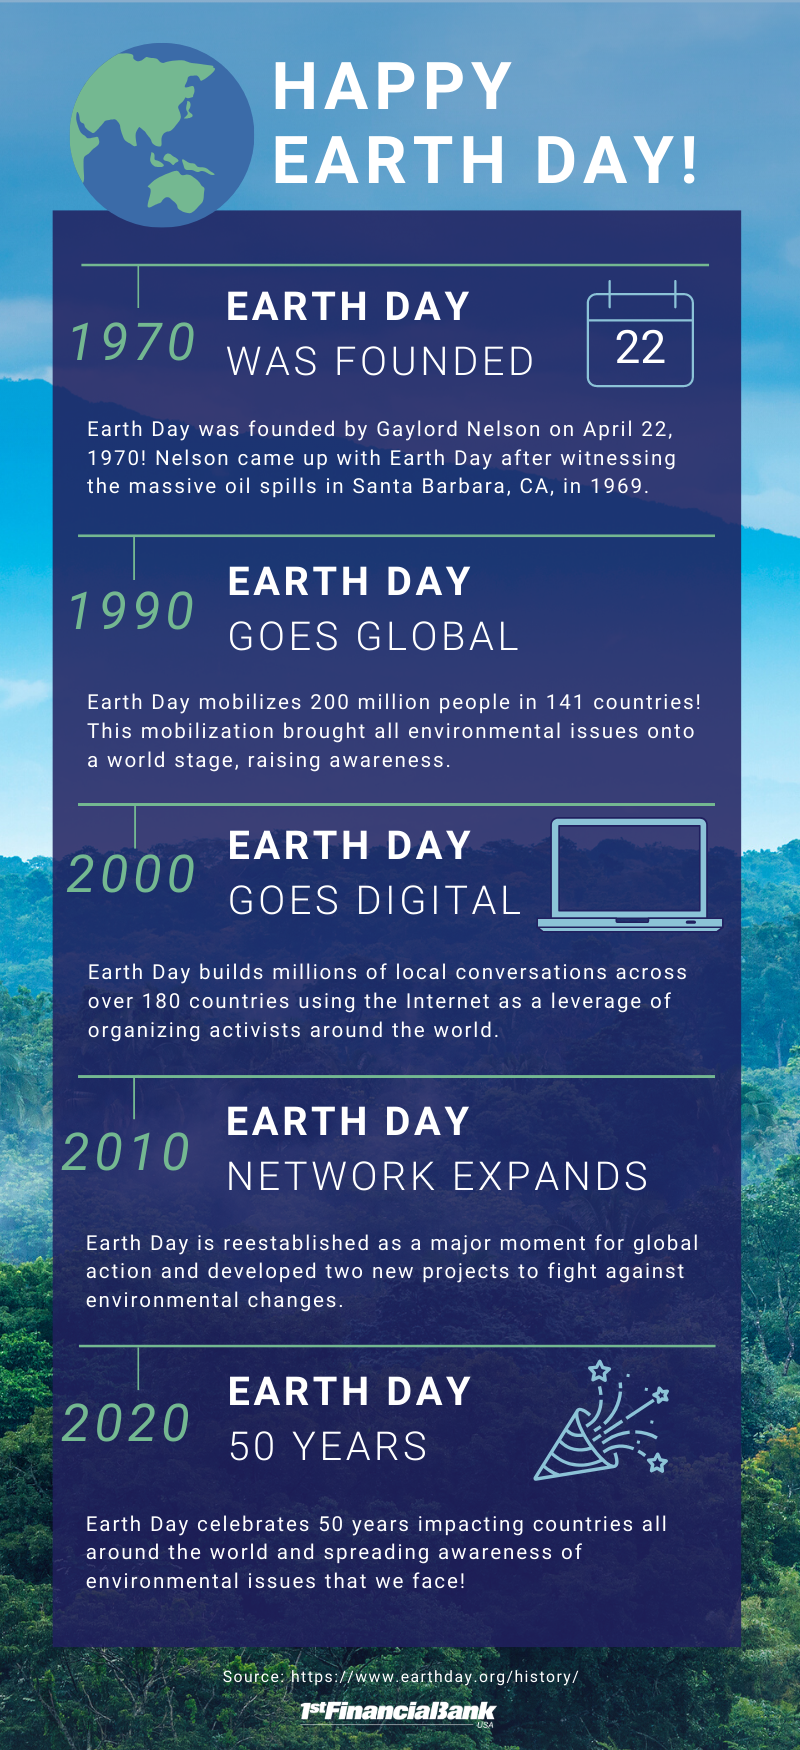 Happy Earth Day Infographic for 50th Year Anniversary of Earth Day from 1st Financial Bank USA